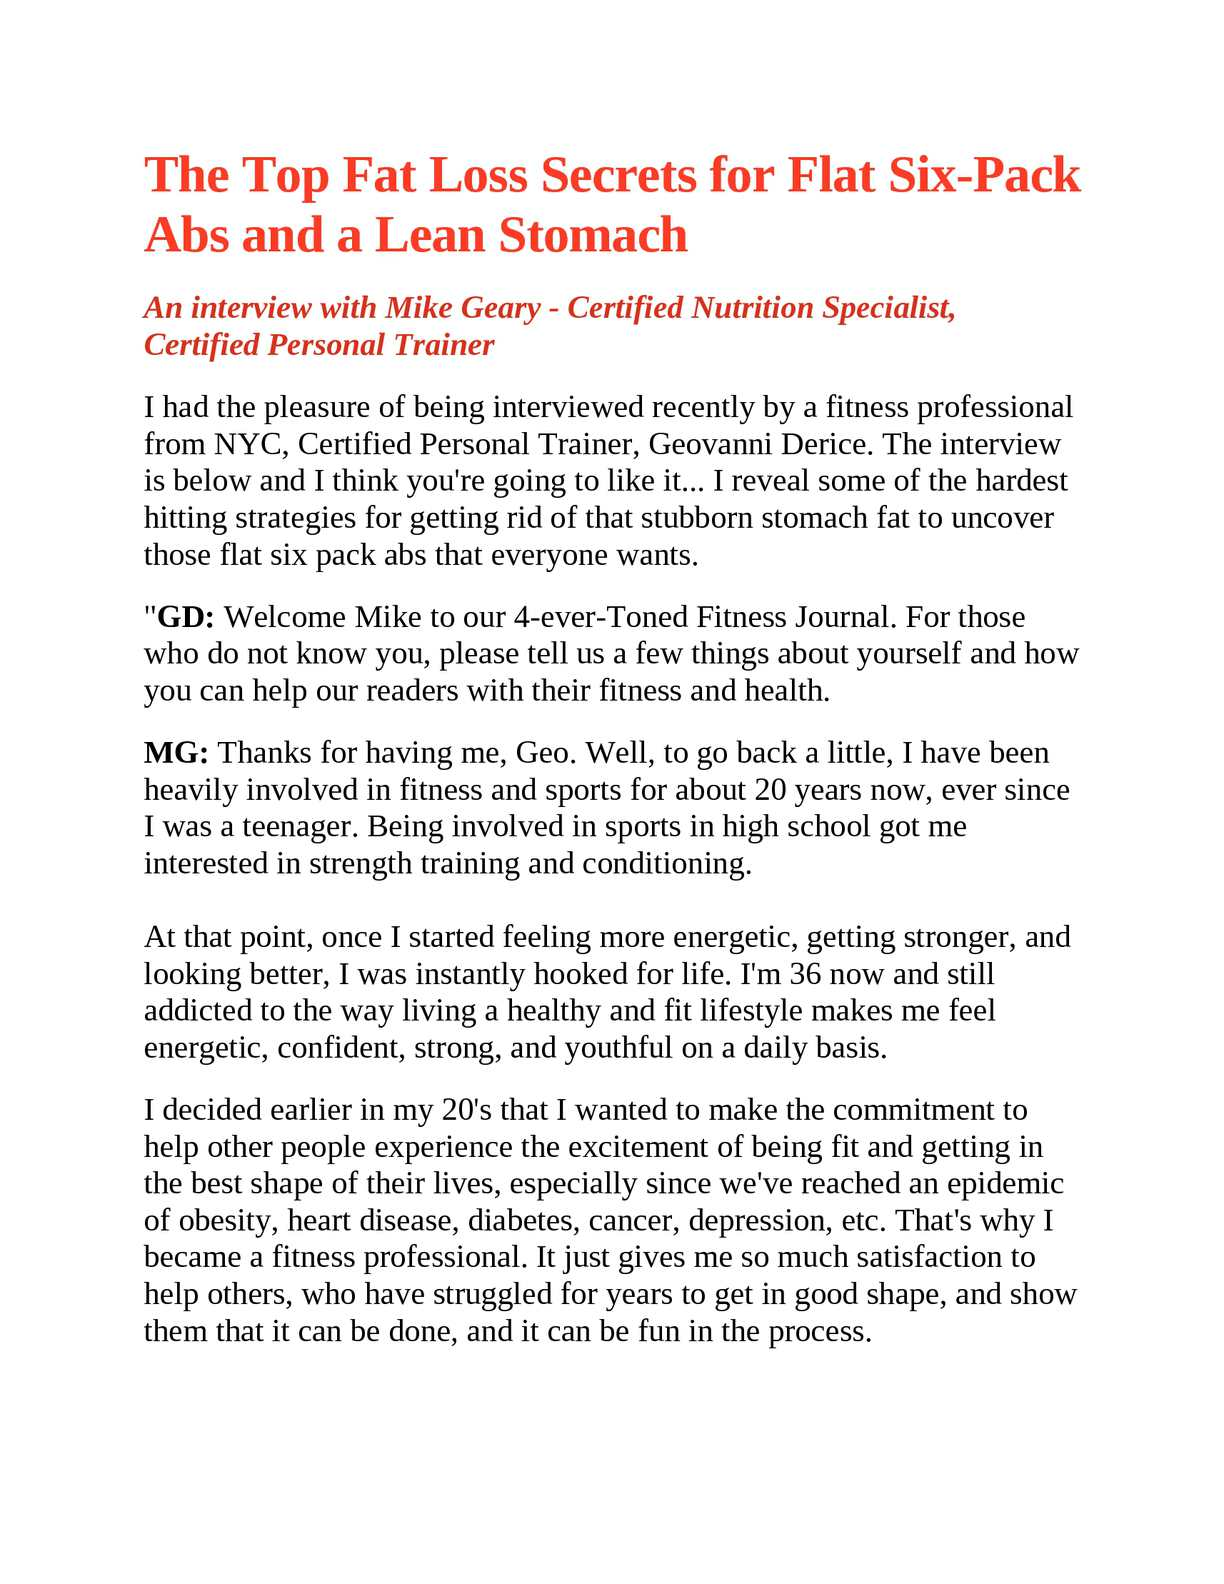 Calameo The Top Fat Loss Secrets For Flat Six Pack Abs And A Lean Stomach